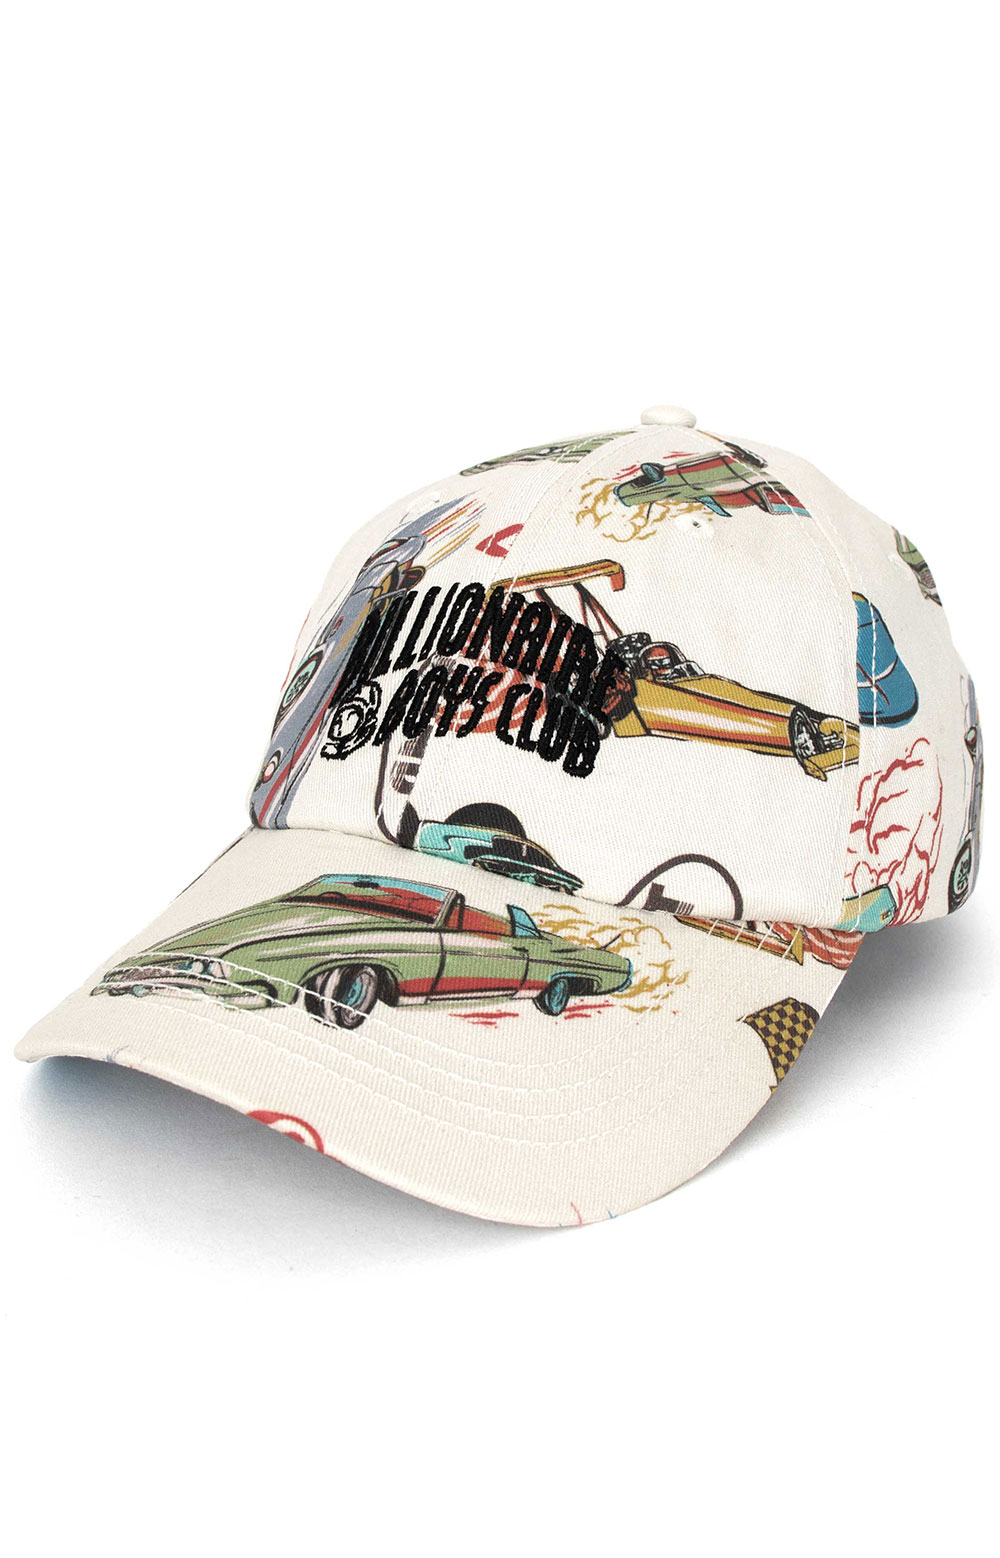 Billionaire Boys Club, BB Driver Hat